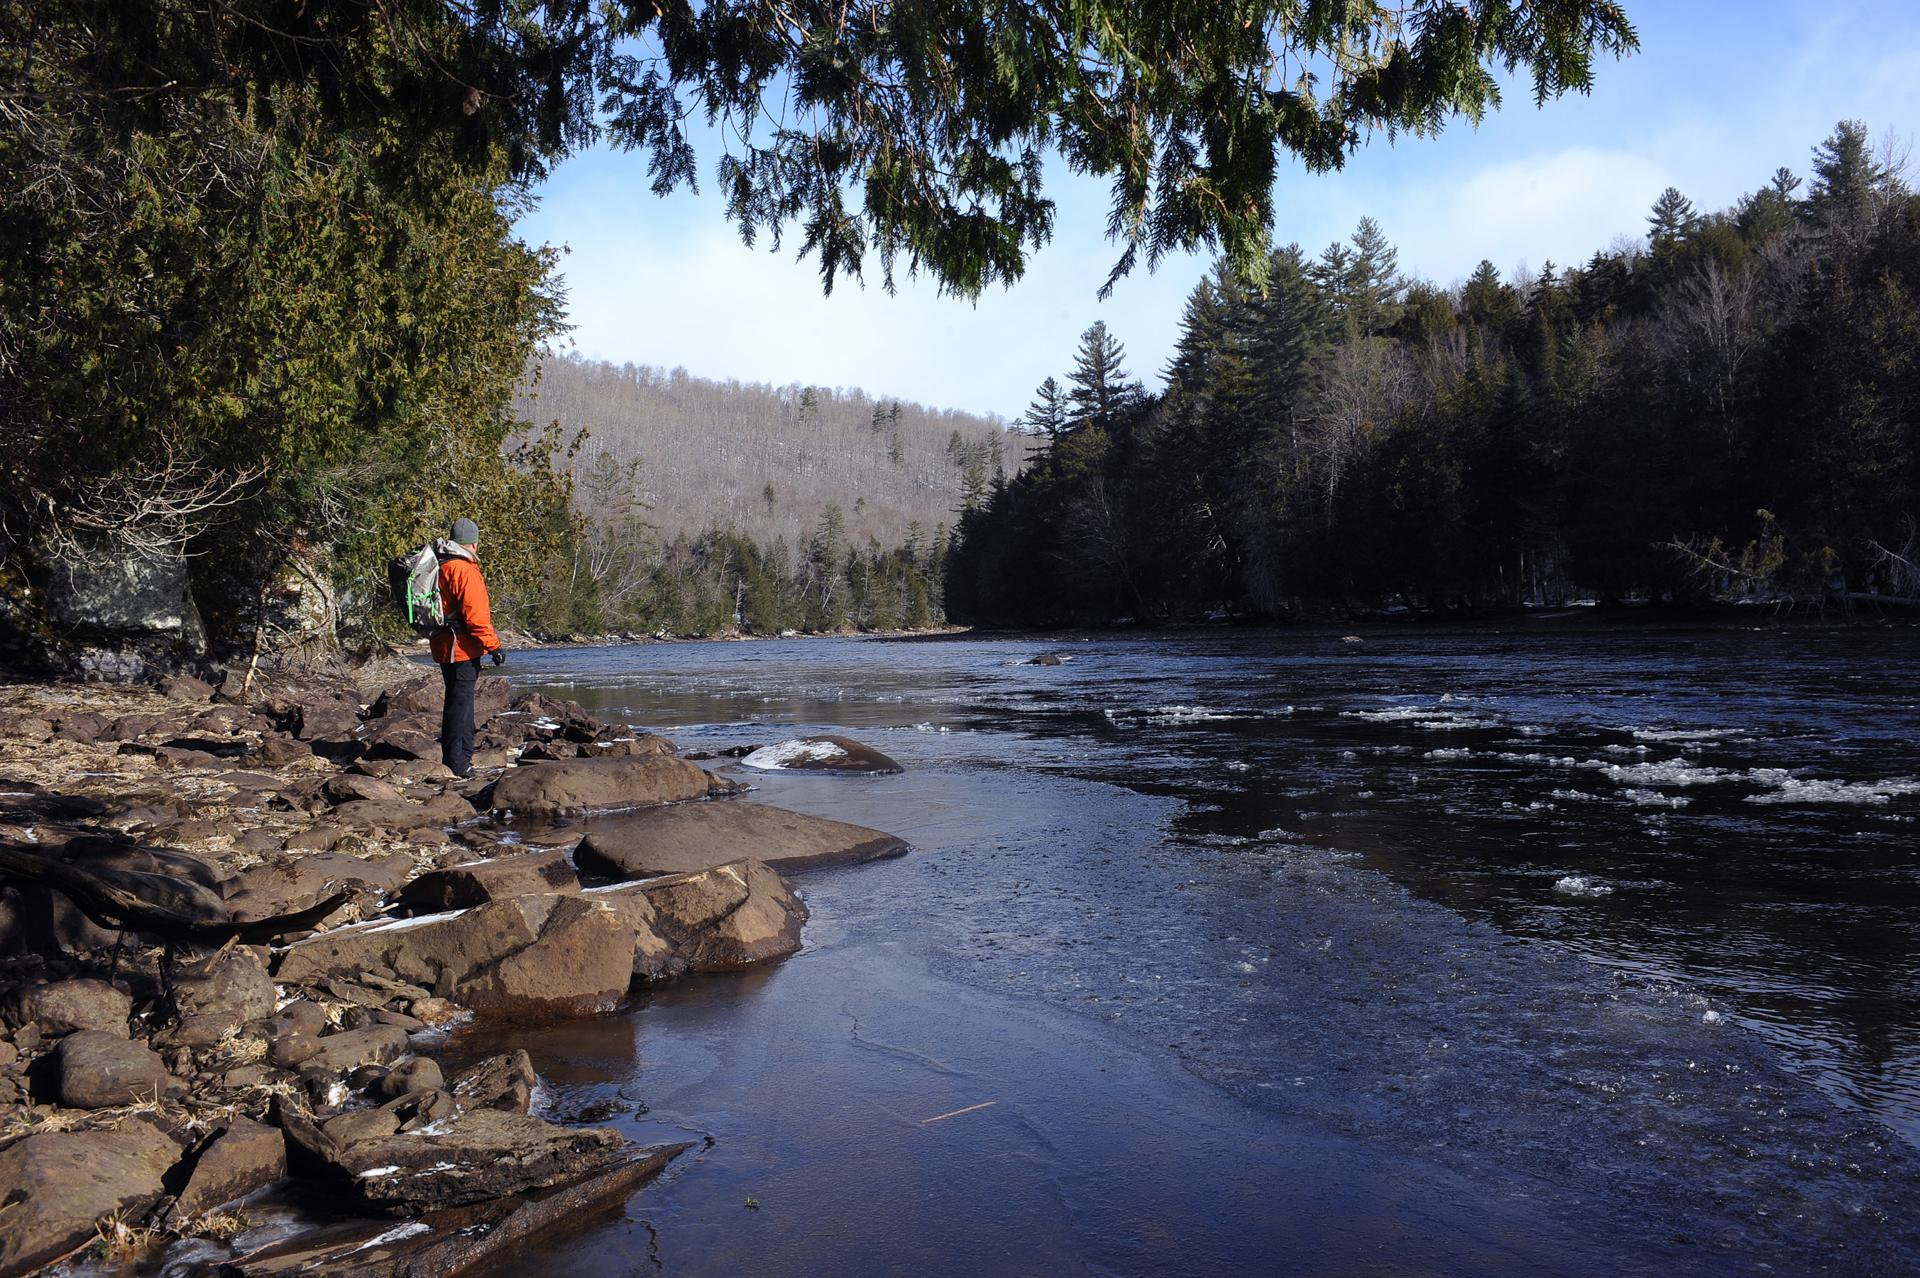 Russell Walters paused by the Kennebec River. A proposed hydropower line would cross over the Kennebec River Gorge.